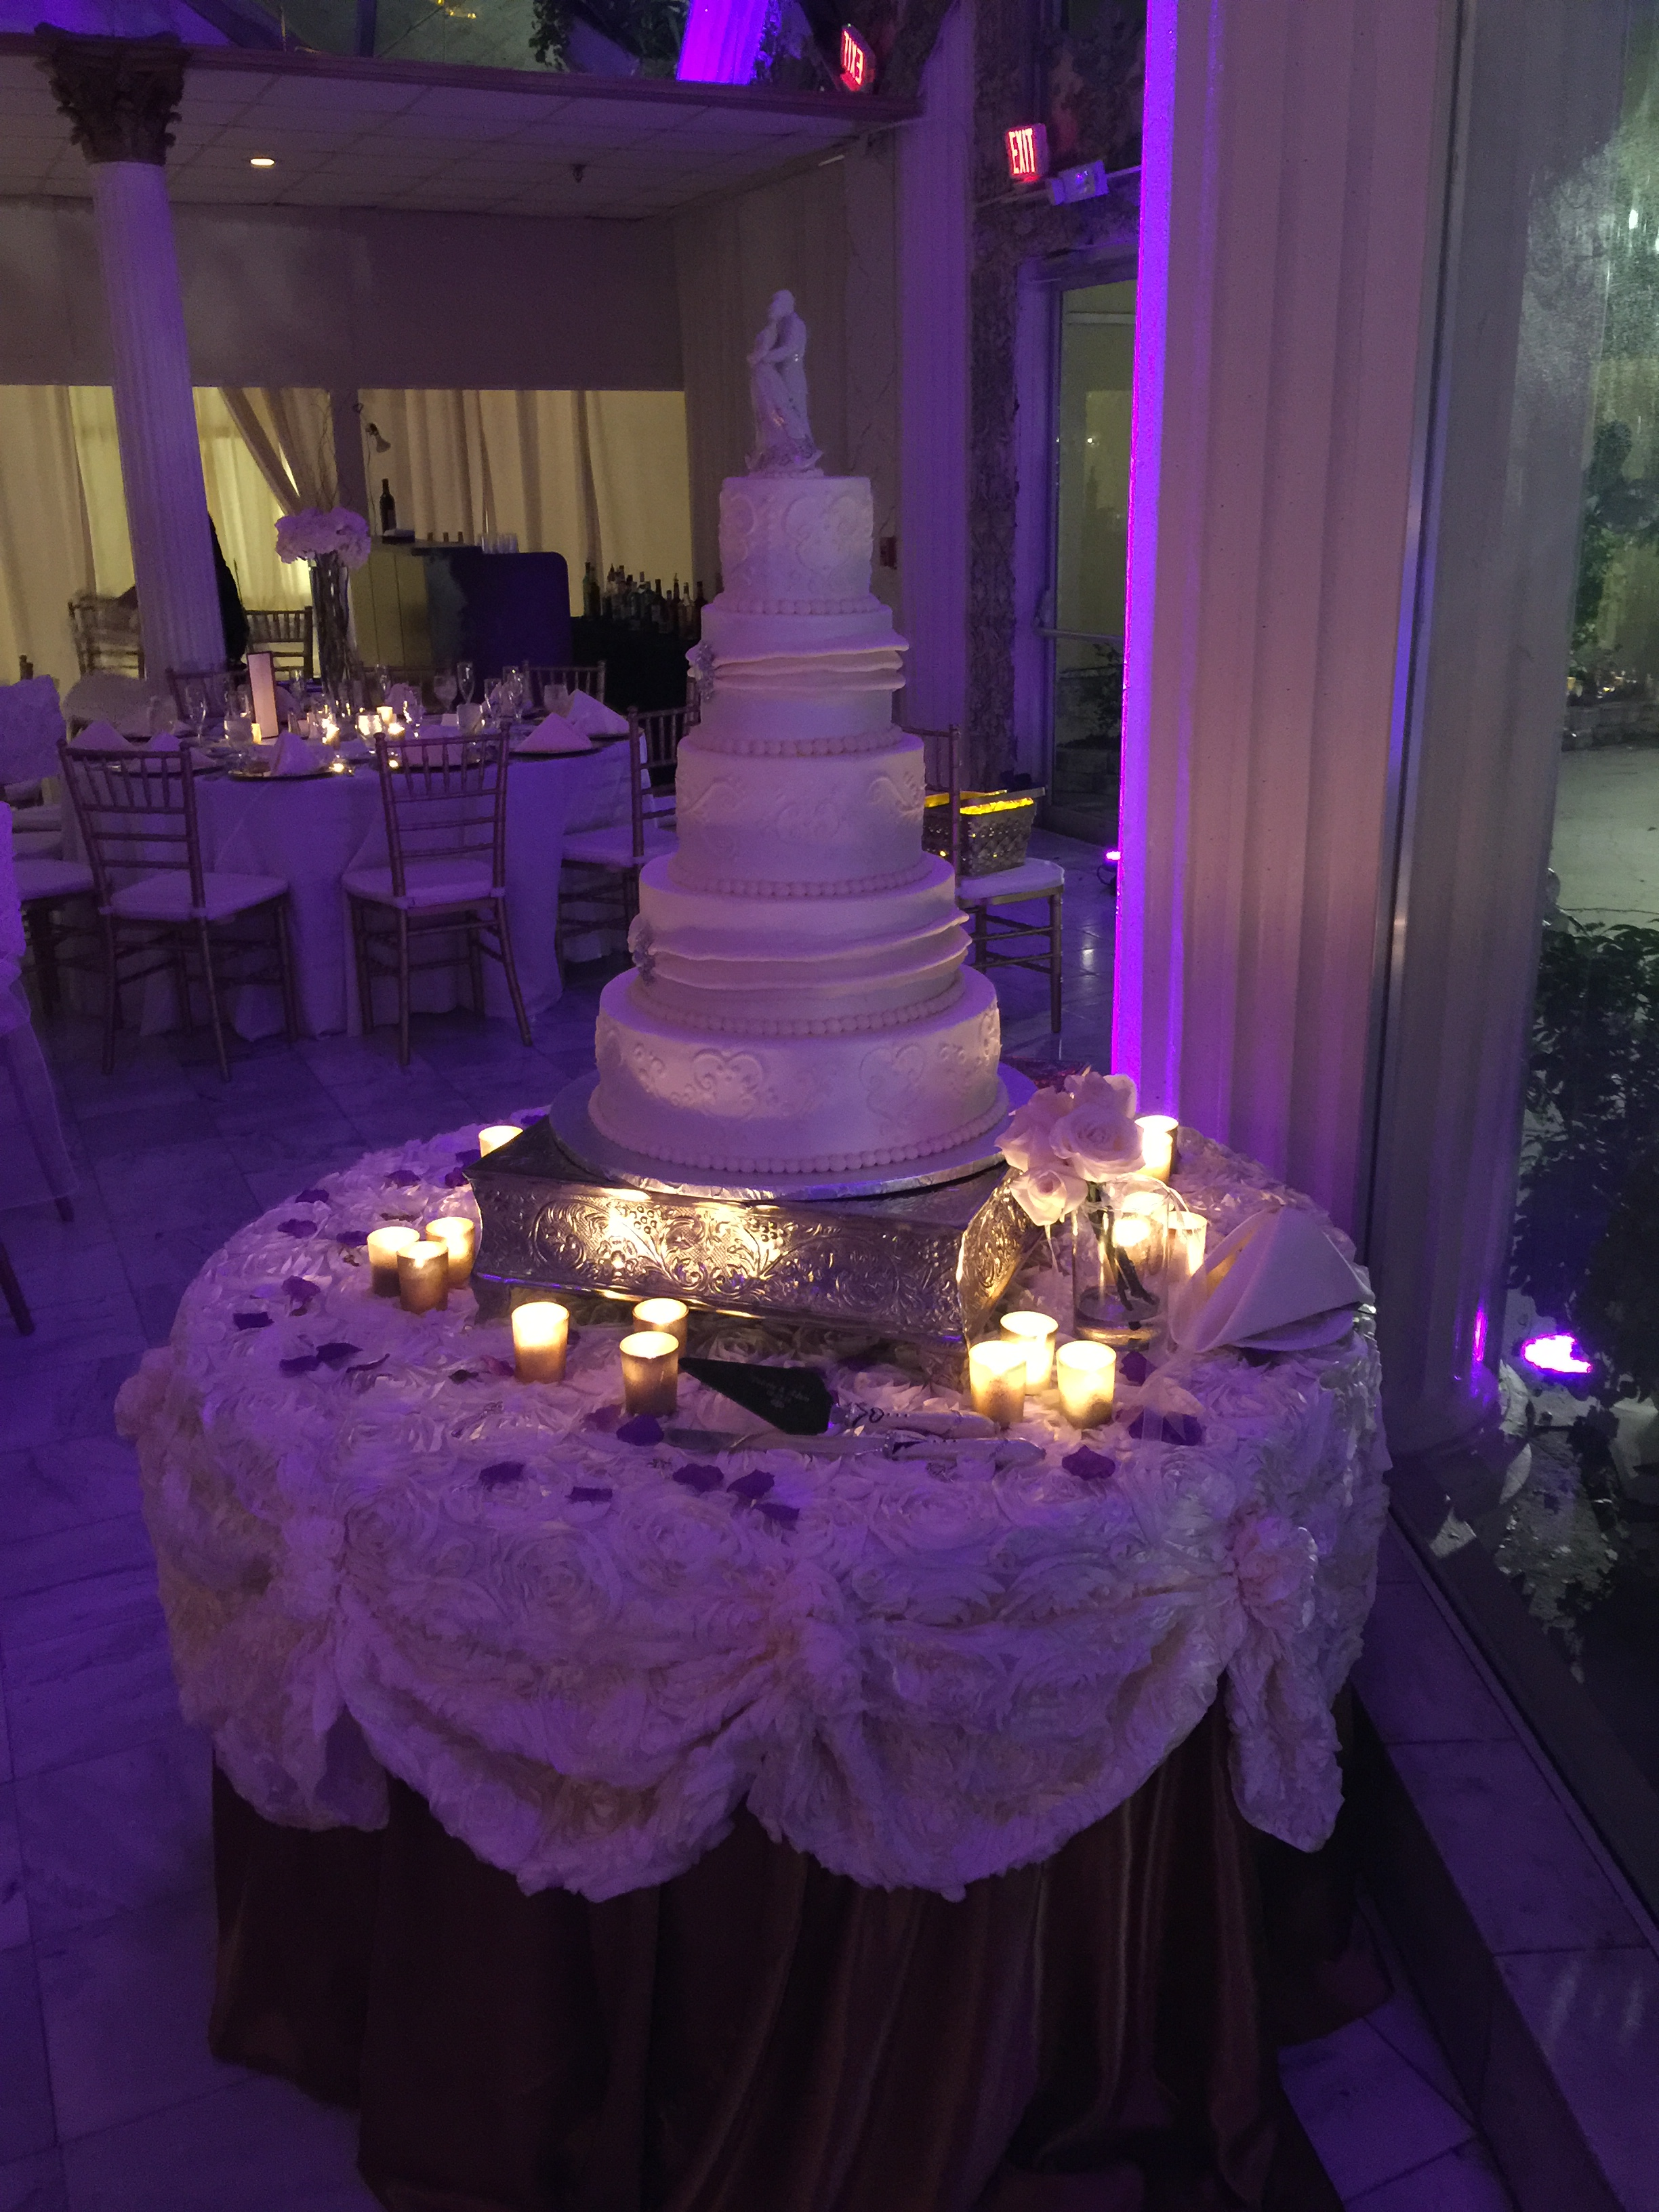 Wedding Cake with Dimmed Lights